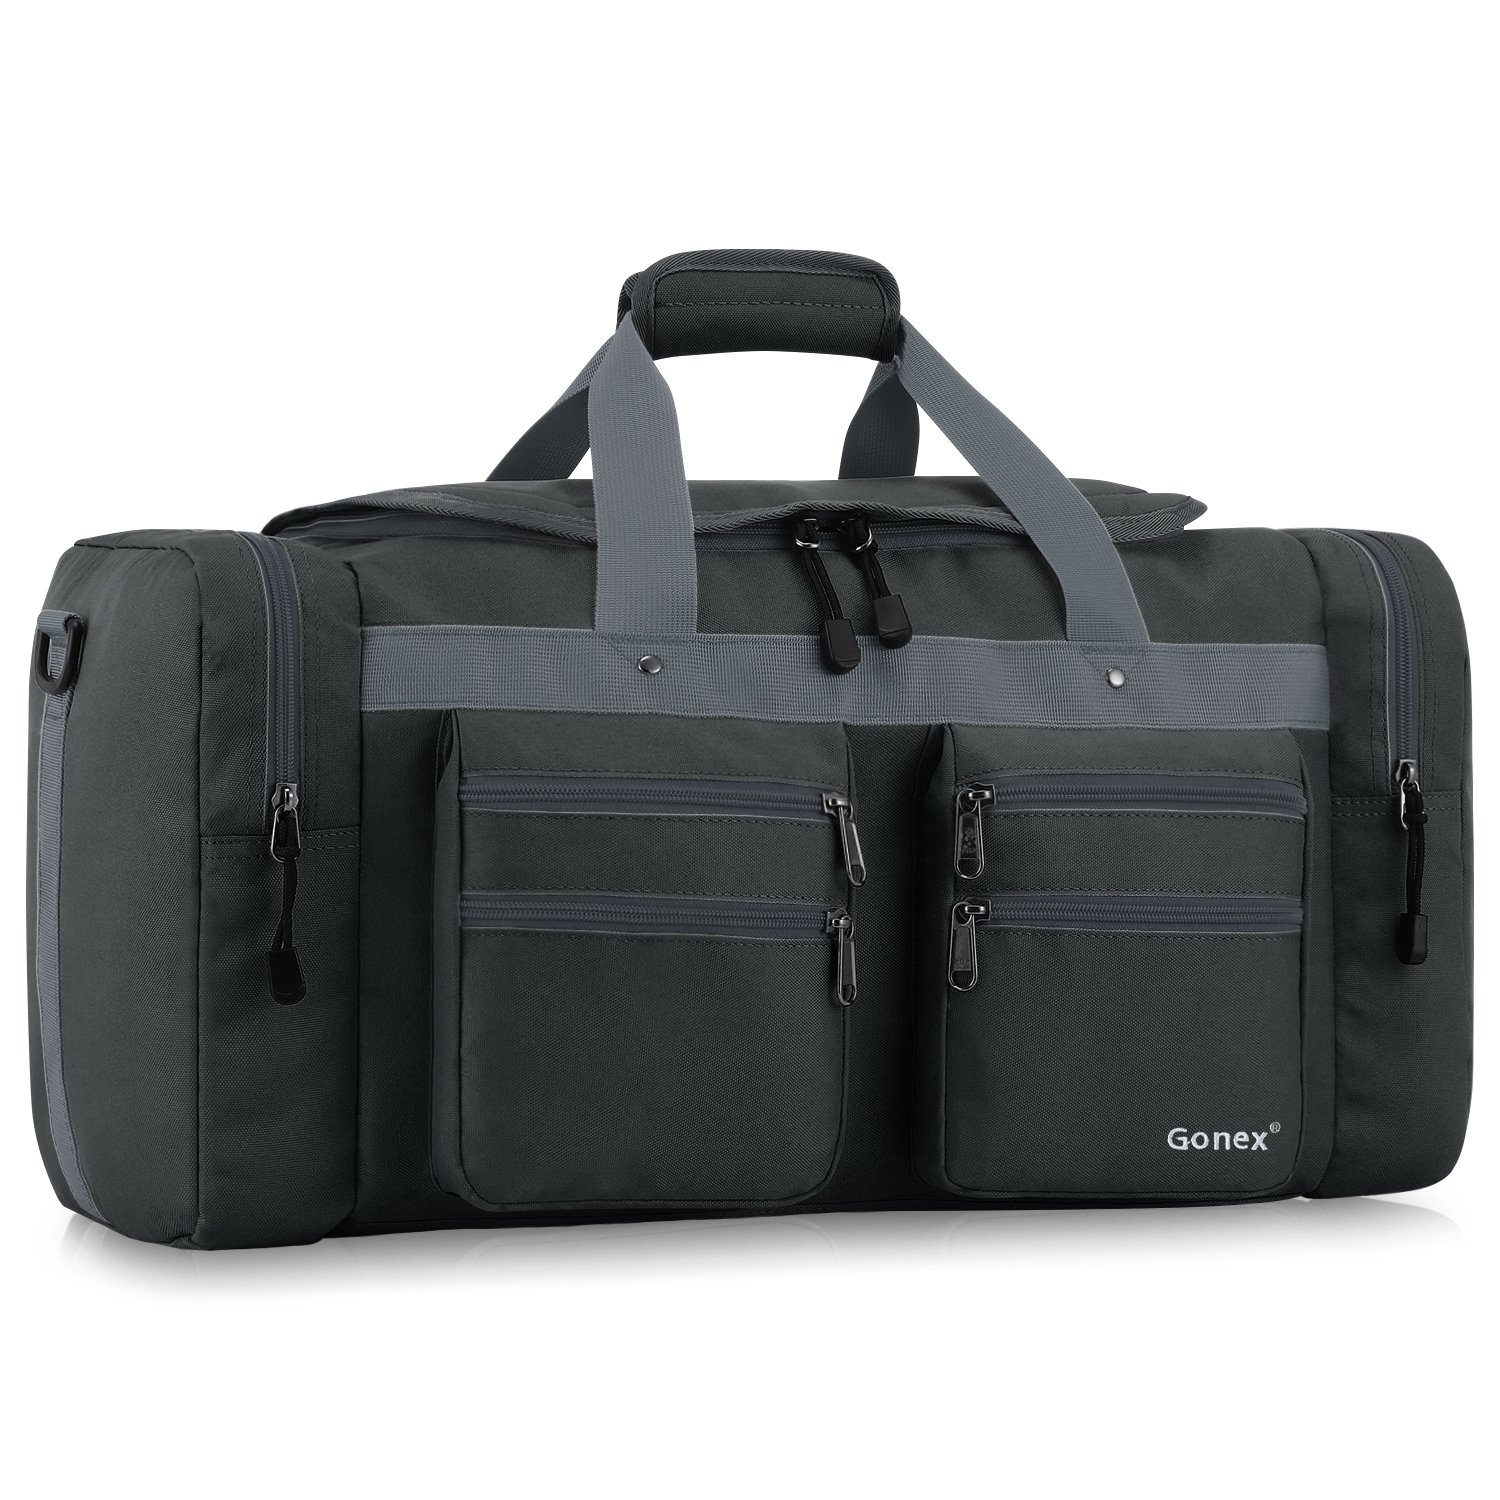 Gonex 45L Travel Duffel, Gym Sports Luggage Bag Water-resistant Many Pockets(Dark gray)